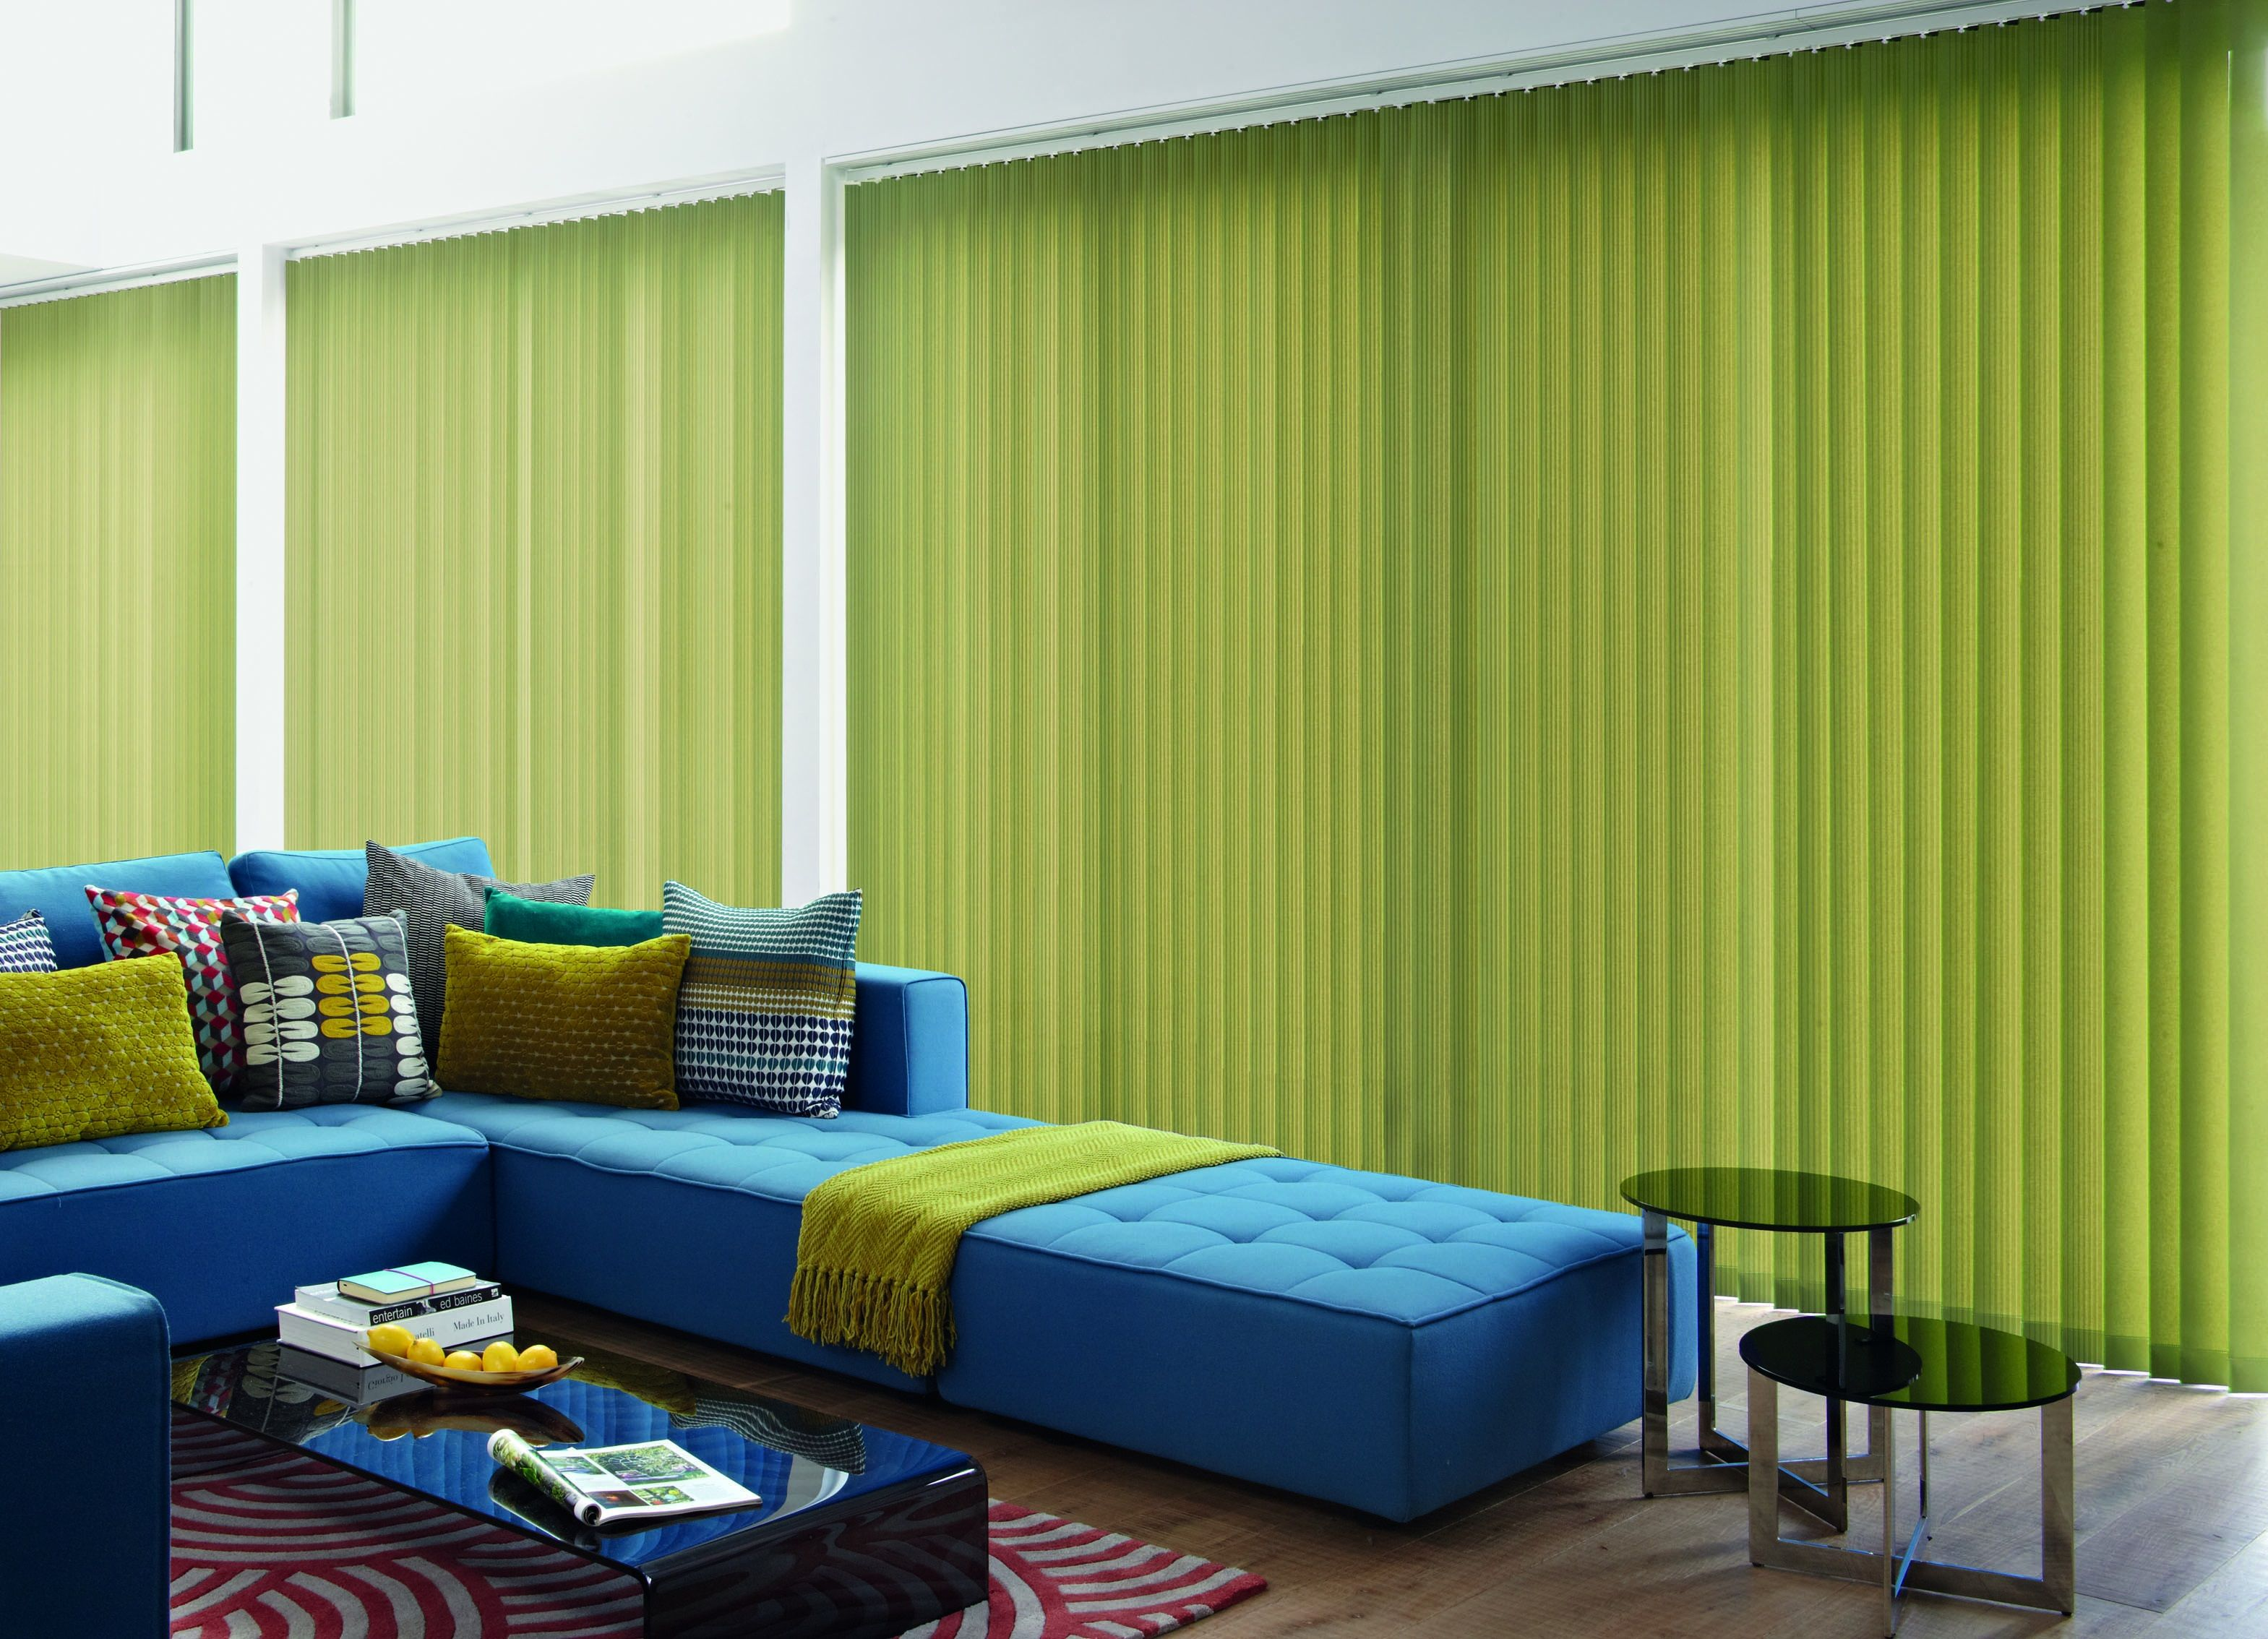 Vertical Blinds Colorful Blinds Fun Decor Idea Low Cost